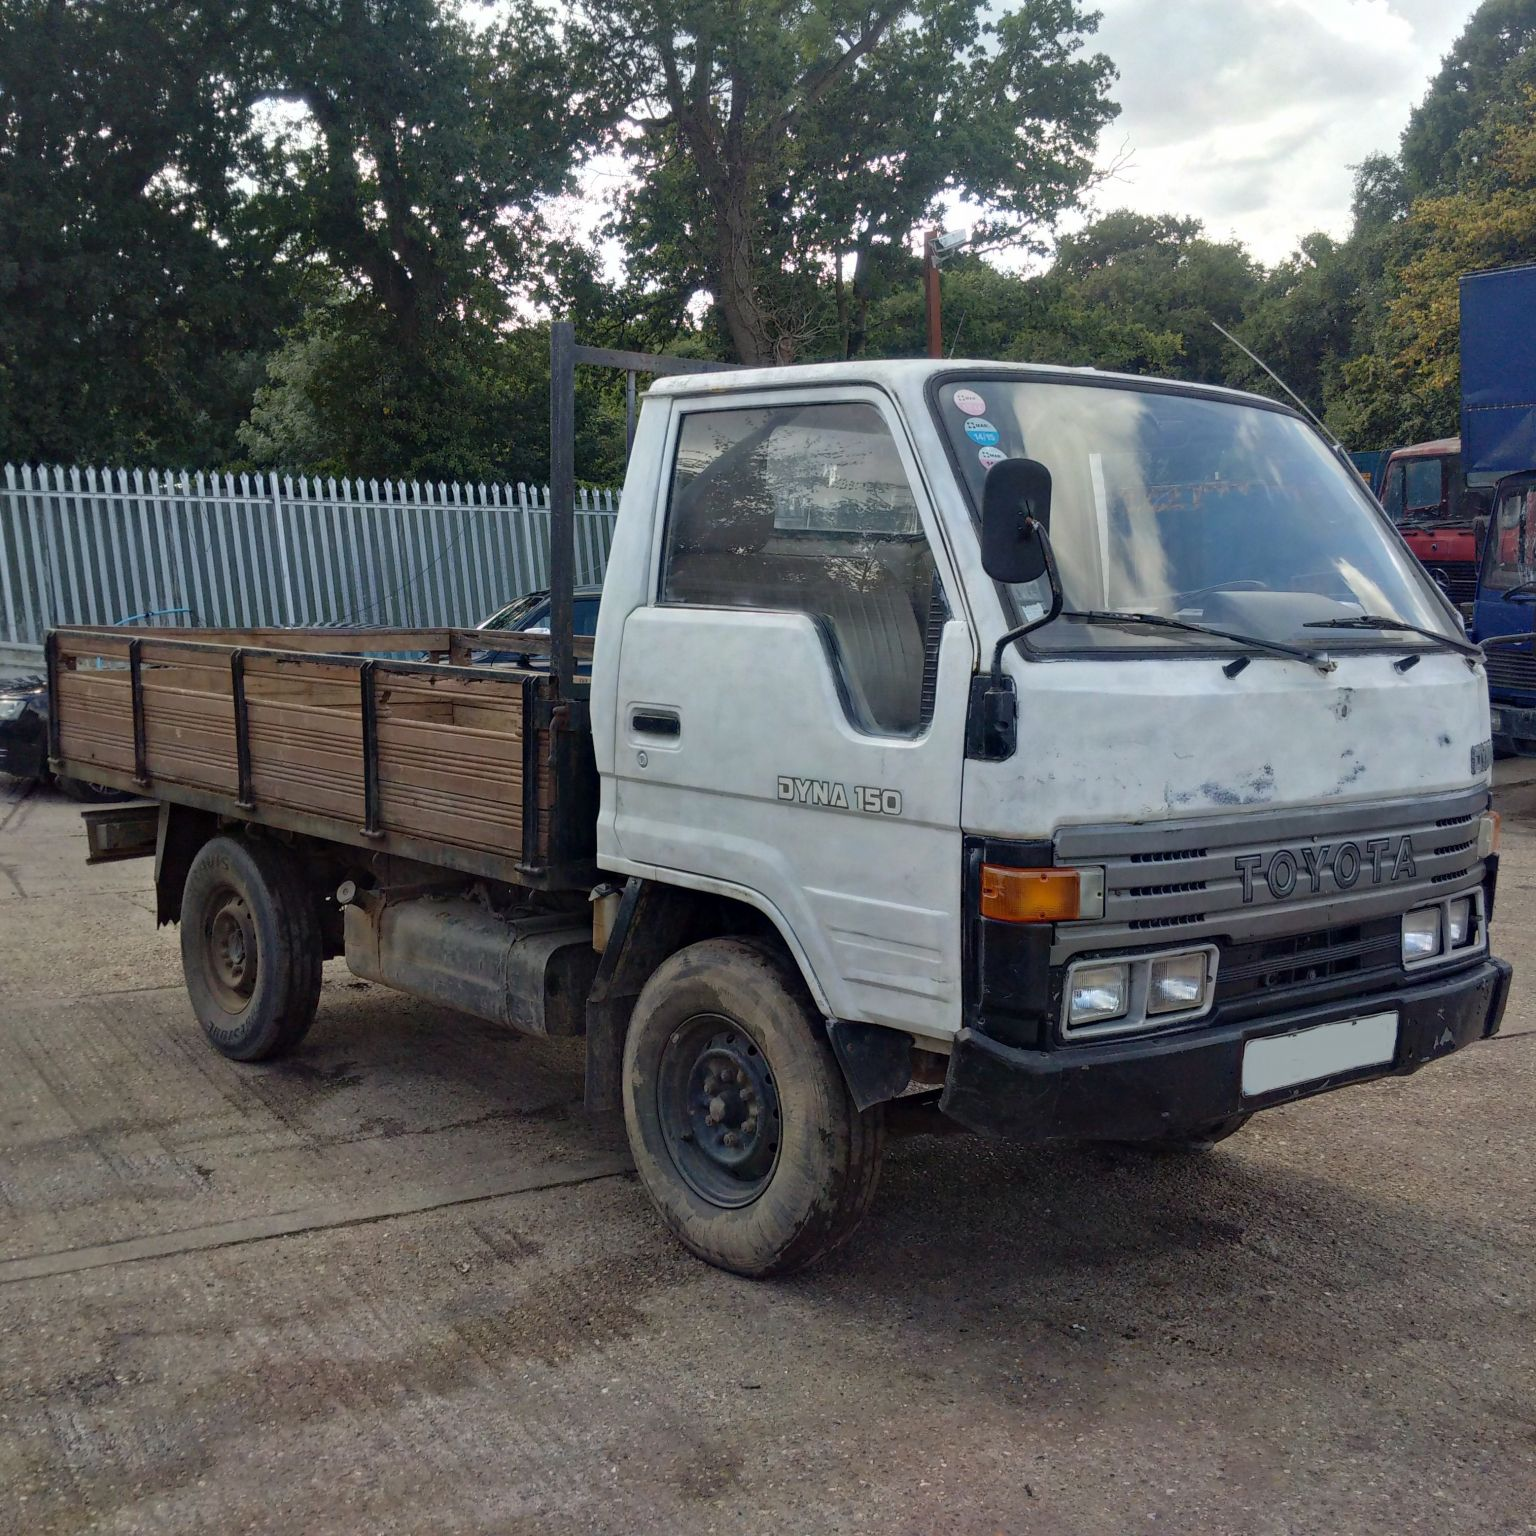 Left hand drive Toyota Dyna 150 LY61L 2.8 diesel single wheel 3.5 Ton pick up truck.